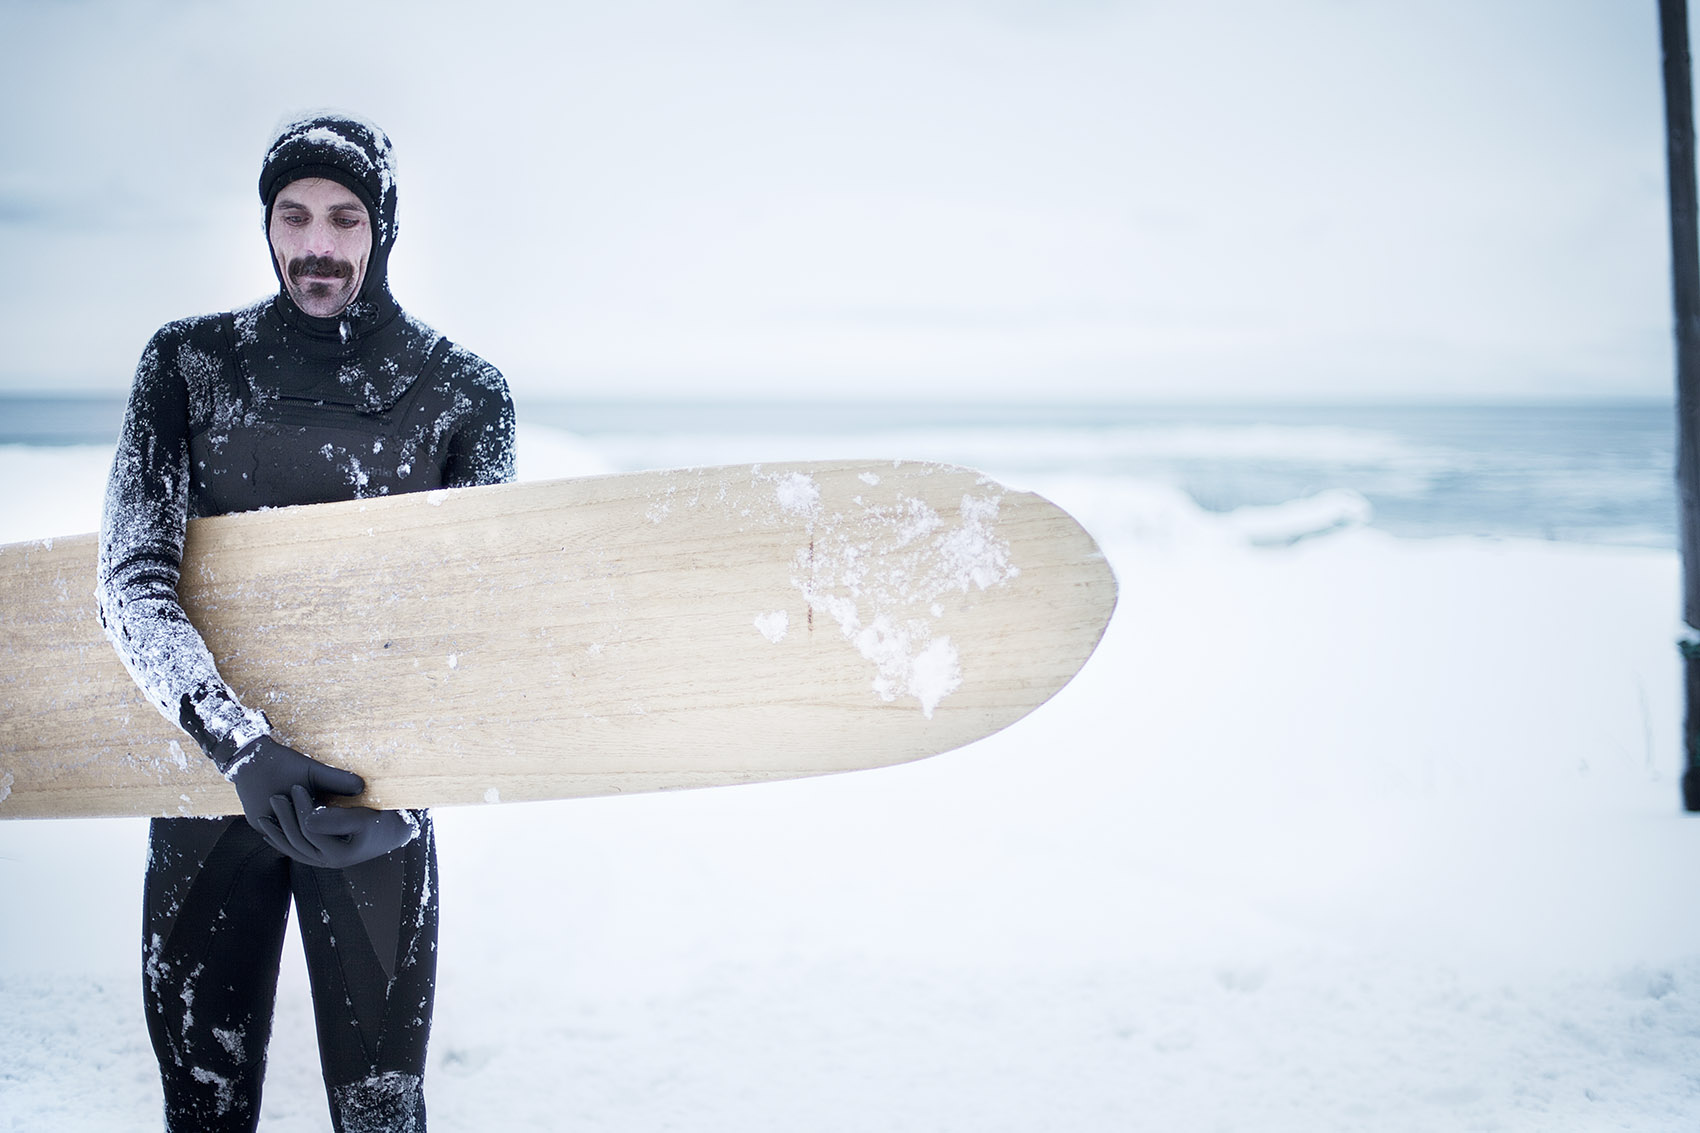 Dan Malloy holds his Alia board in Hokkaido, Japan during a snowstorm by Boston based commercial lifestyle photographer Brian Nevins